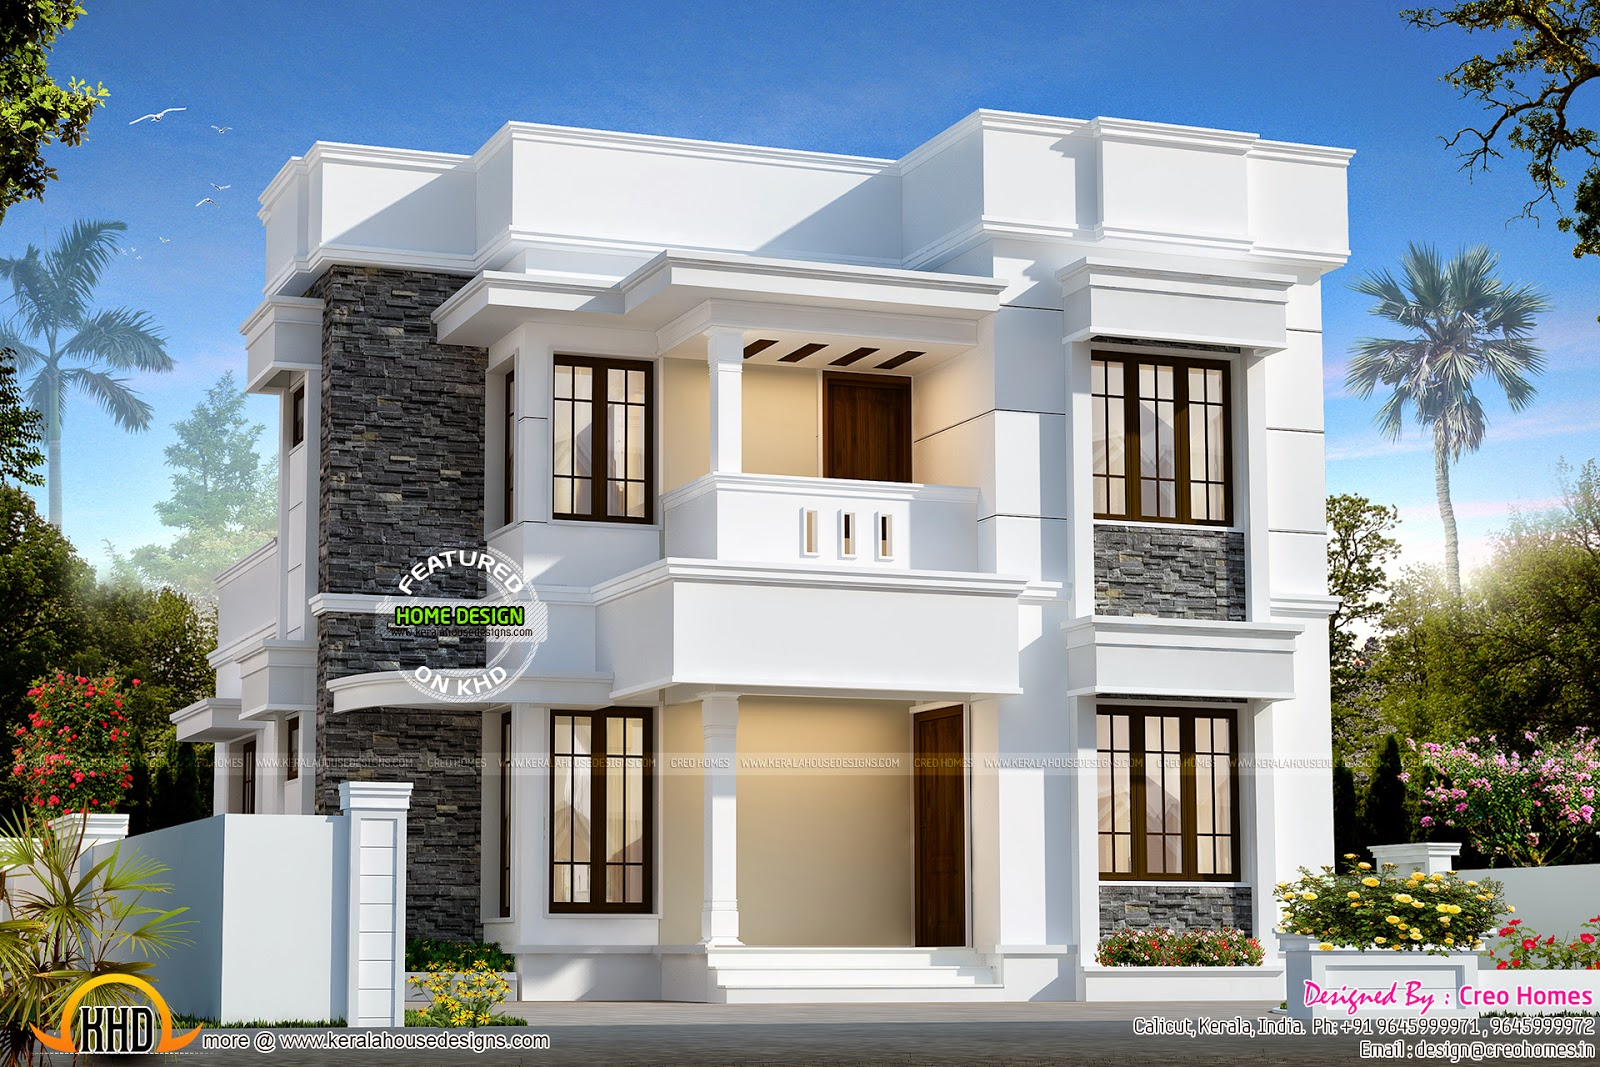 Beautiful modern contemporary home keralahousedesigns for Beautiful modern homes